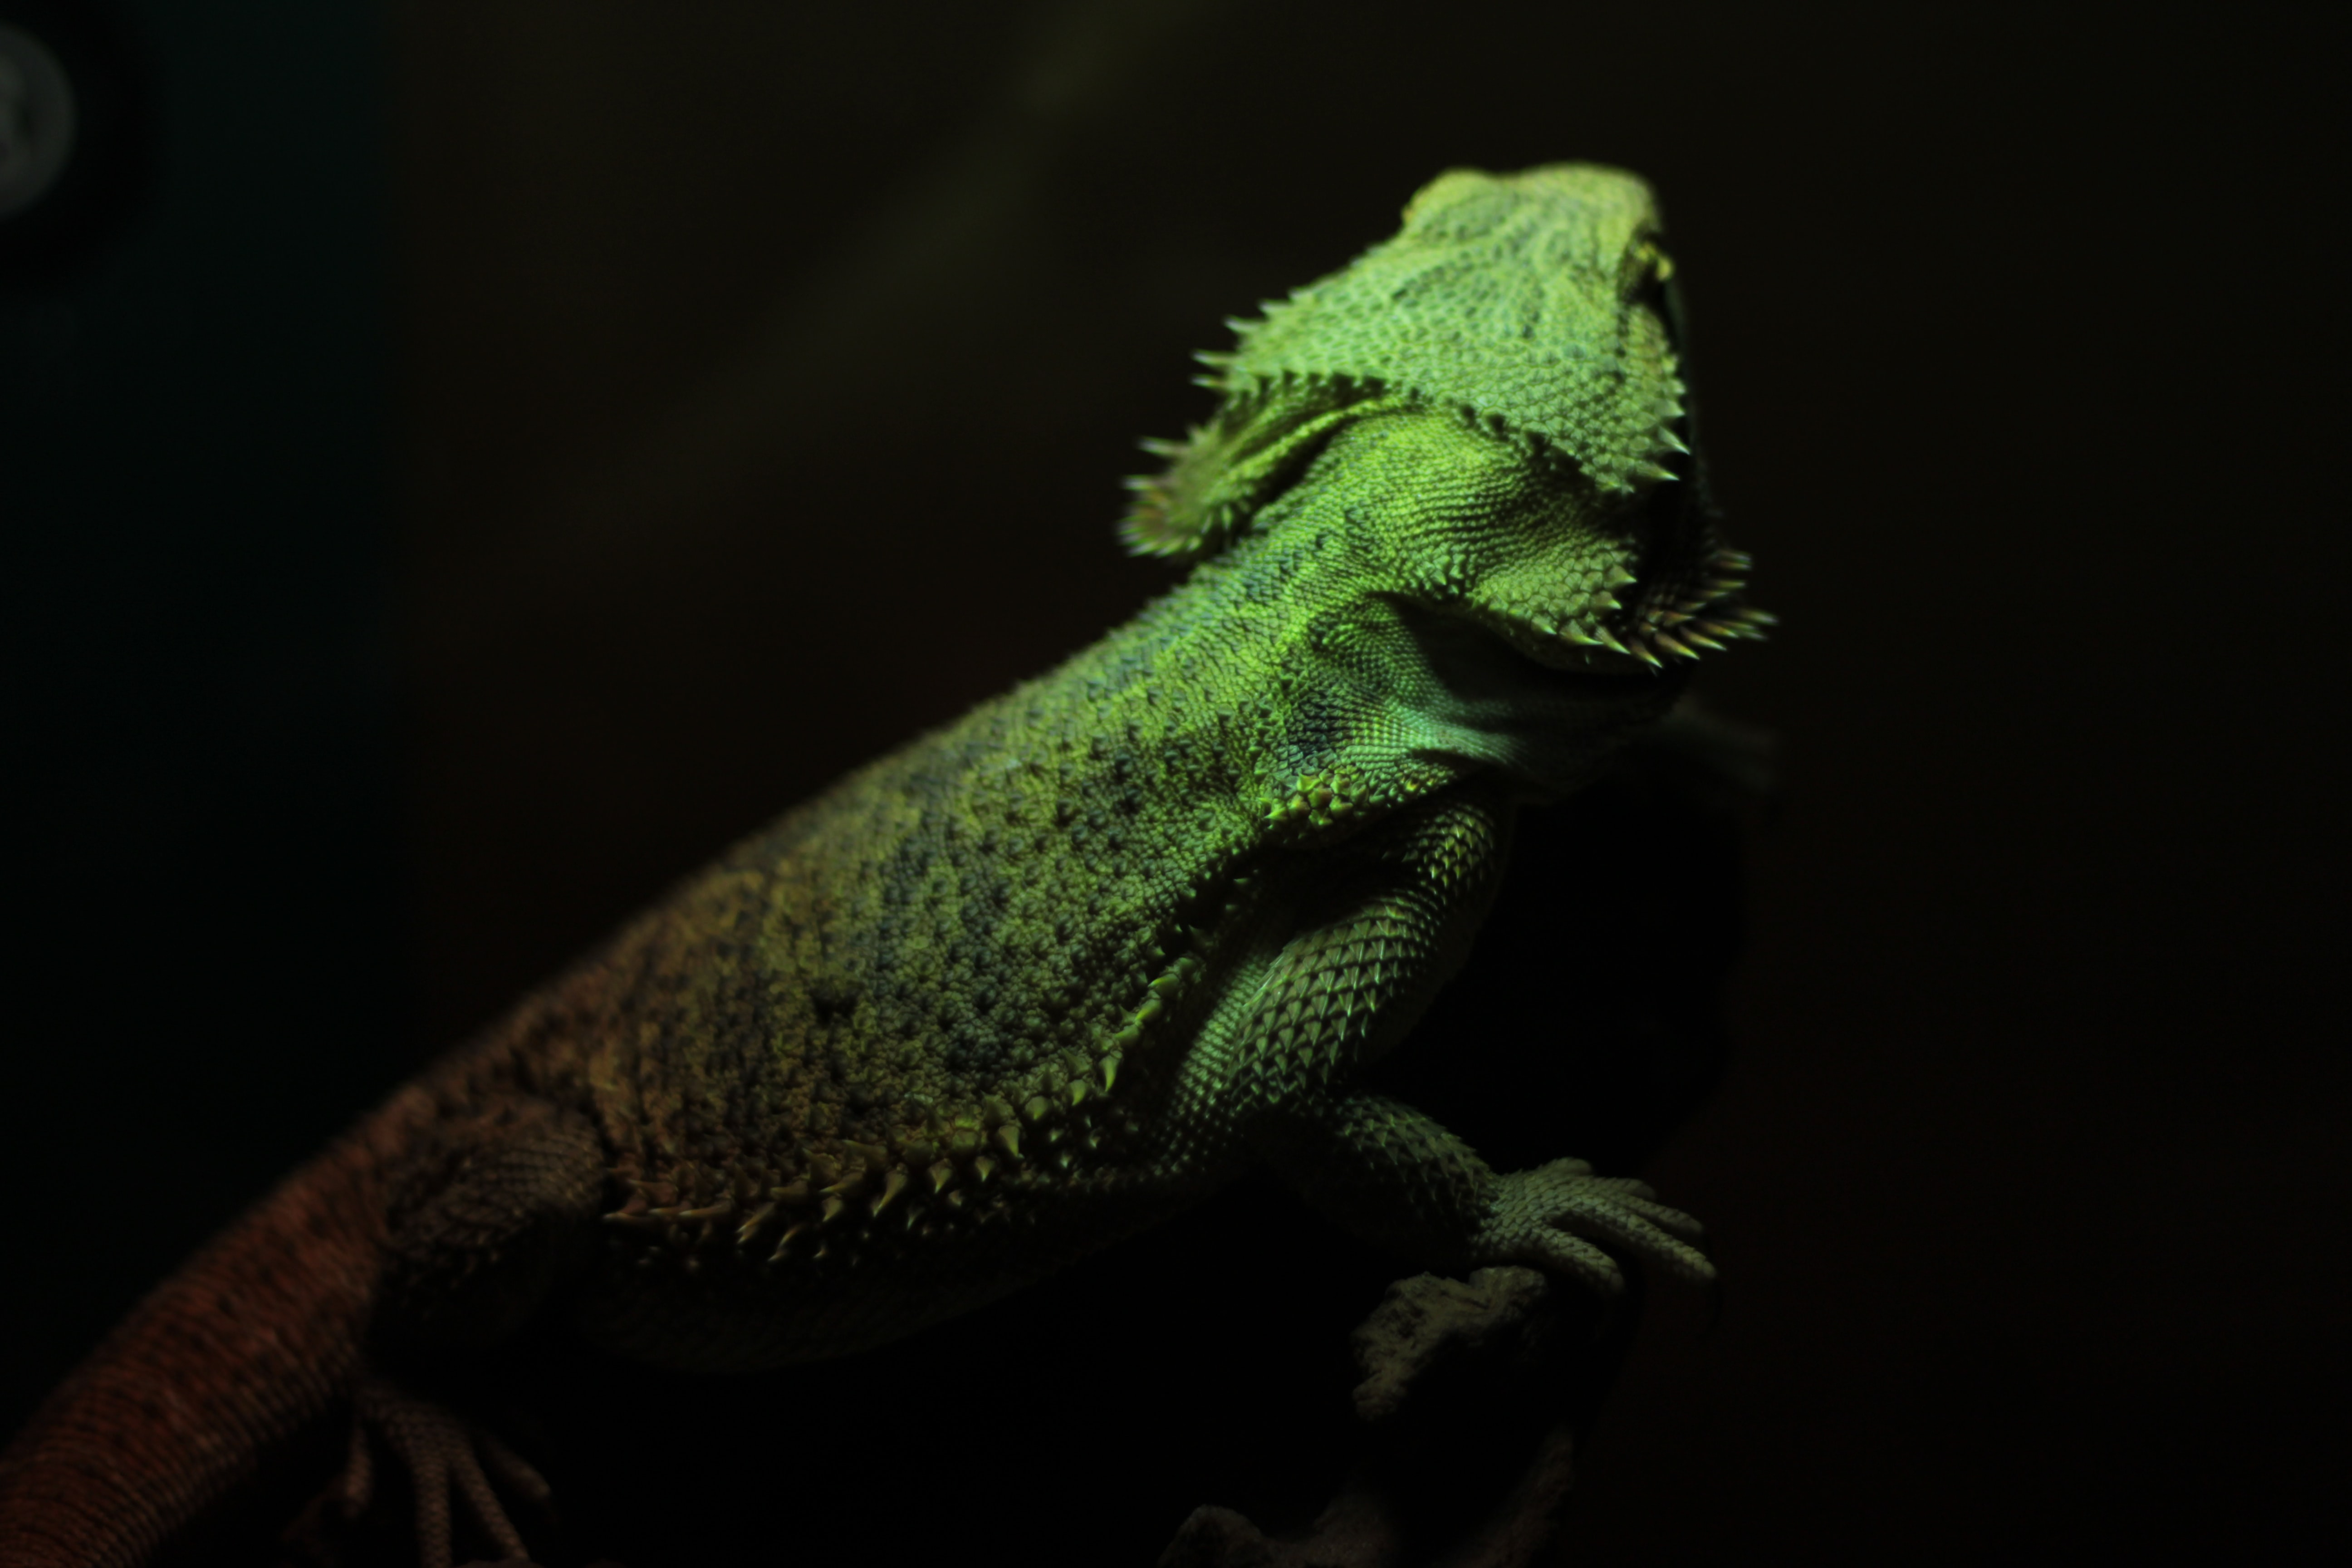 green bearded dragon shallow focus photography